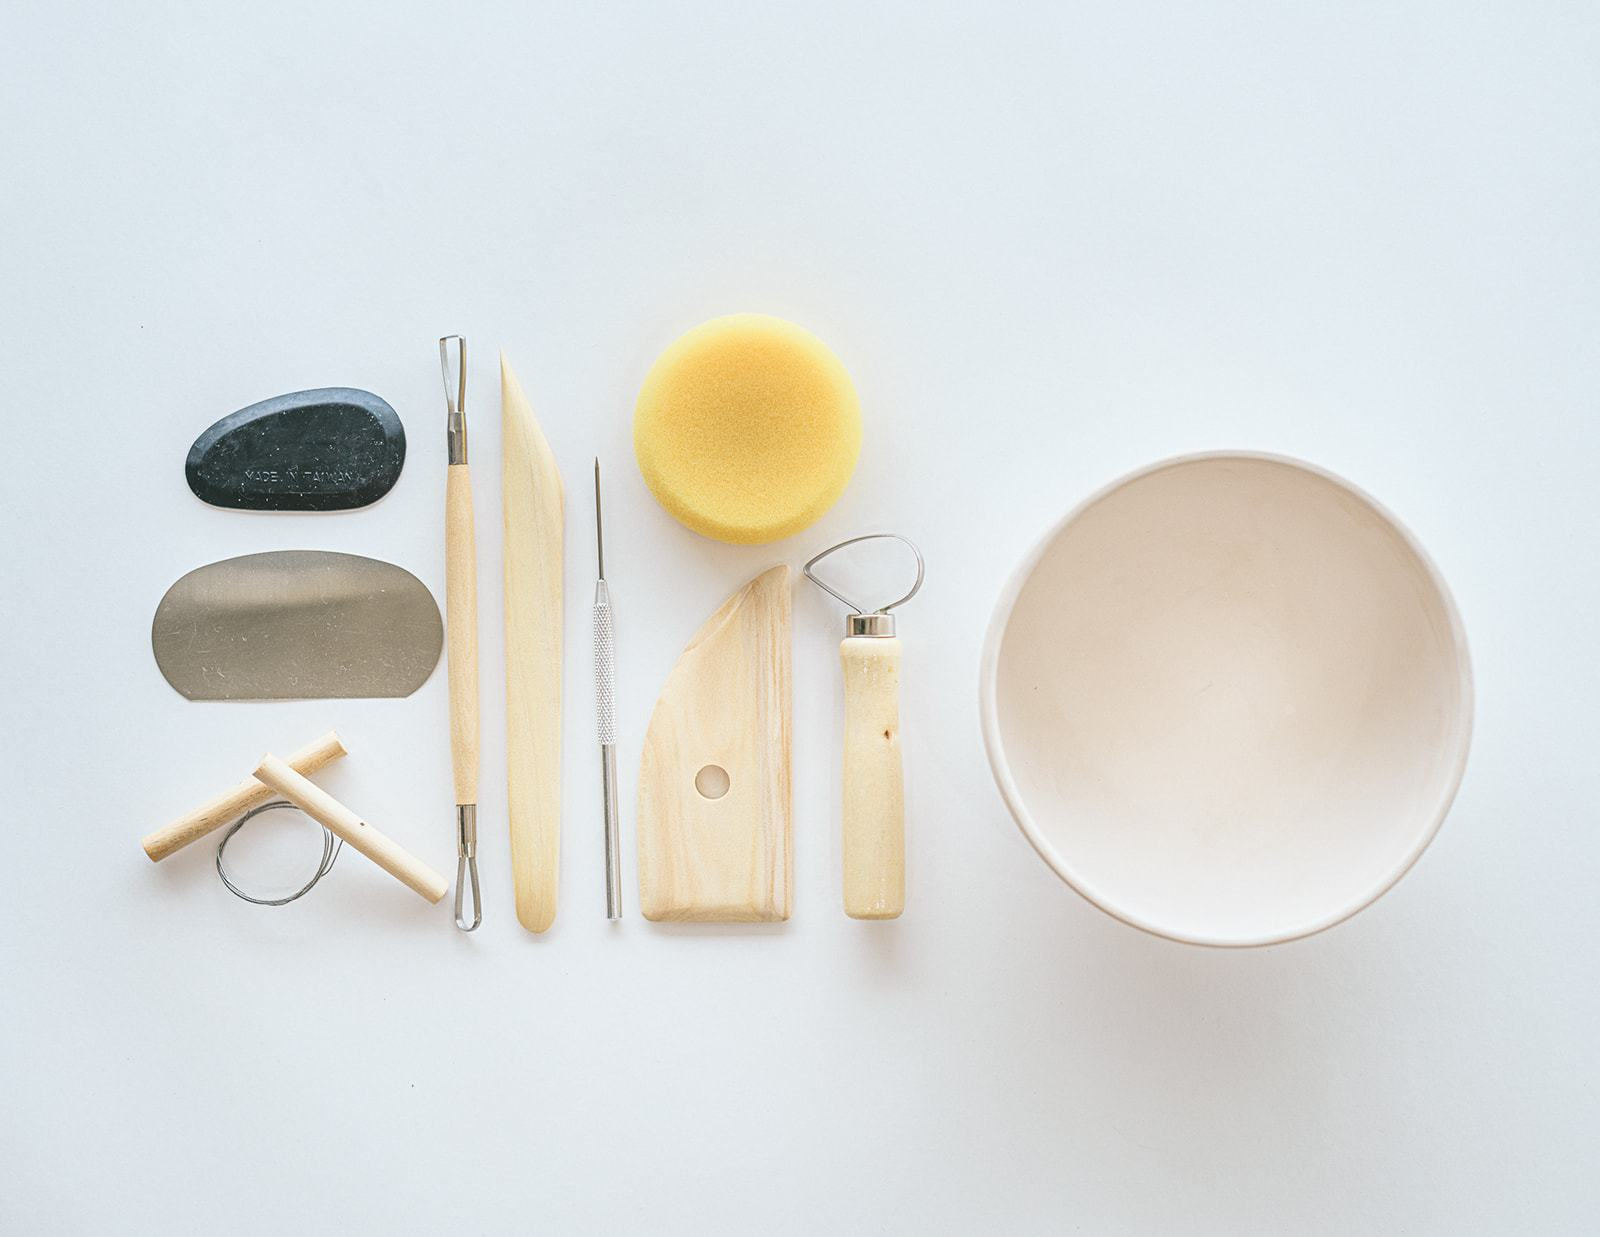 VASE WORKSHOP KIT